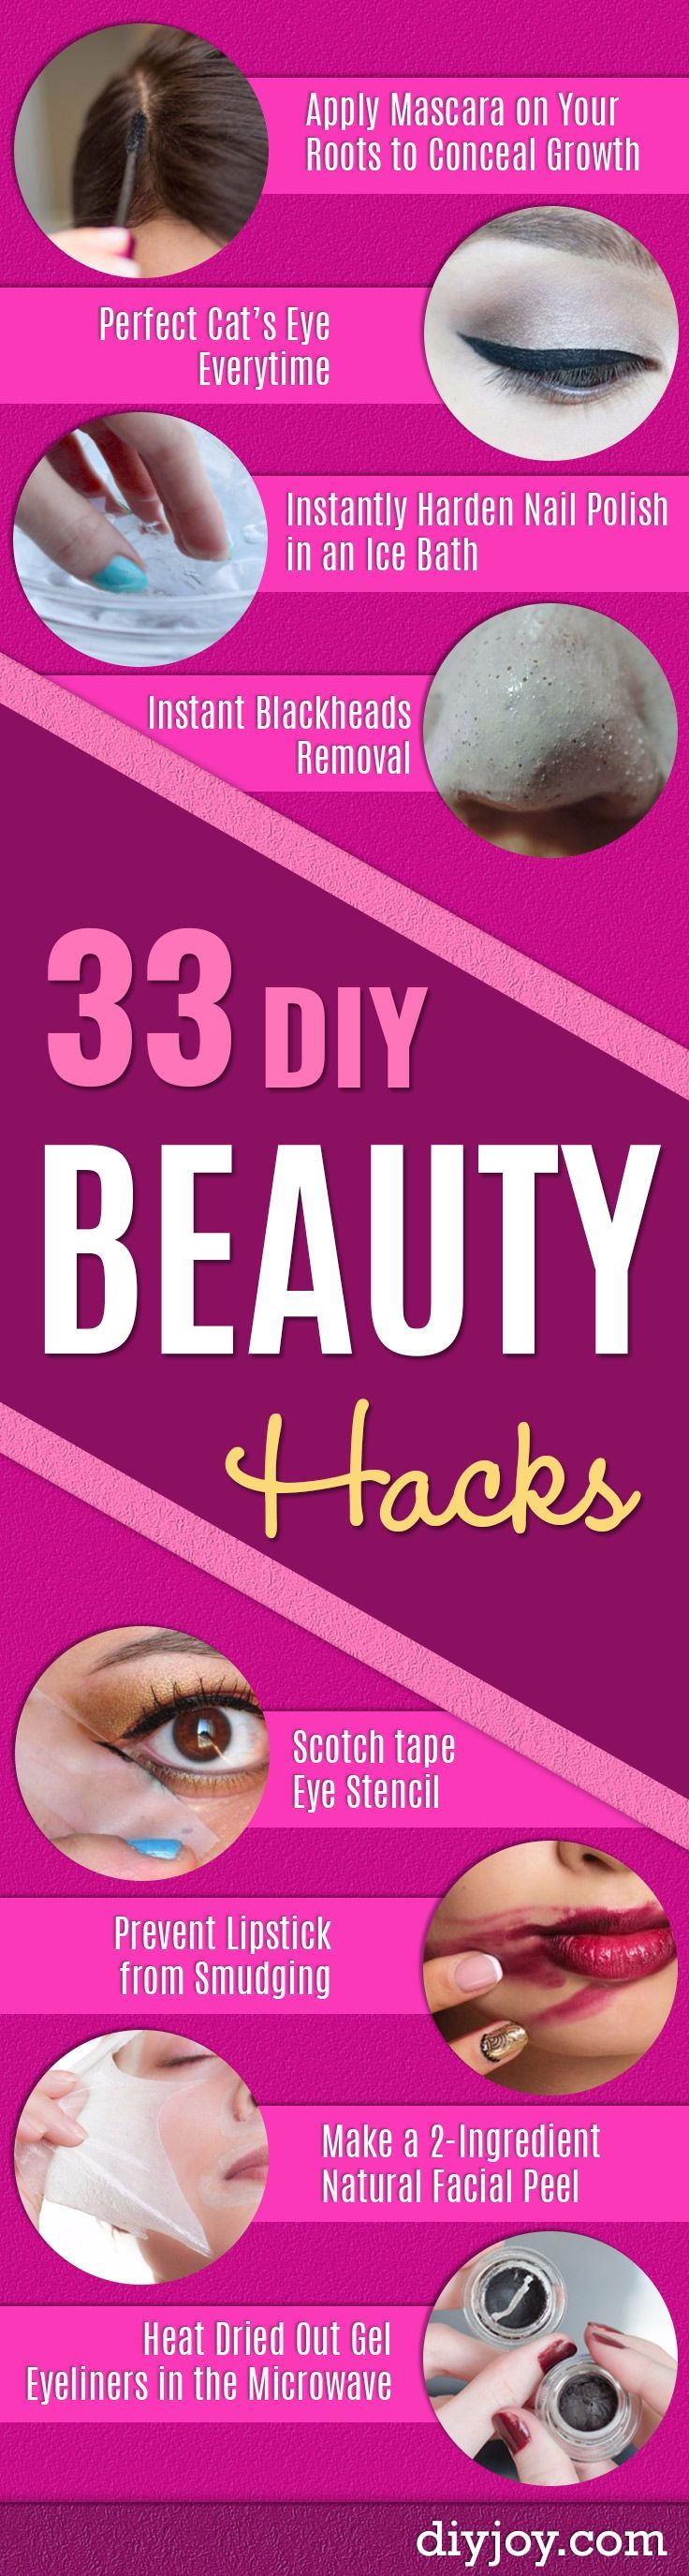 DIY Beauty Hacks - Cool Tips for Makeup, Hair and Nails - Step by Step Tutorials for Fixing Broken Makeup, Eye Shadow, Mascara, Foundation - Quick Beauty Ideas for Best Looks in A Hurry http://diyjoy.com/diy-beauty-hacks